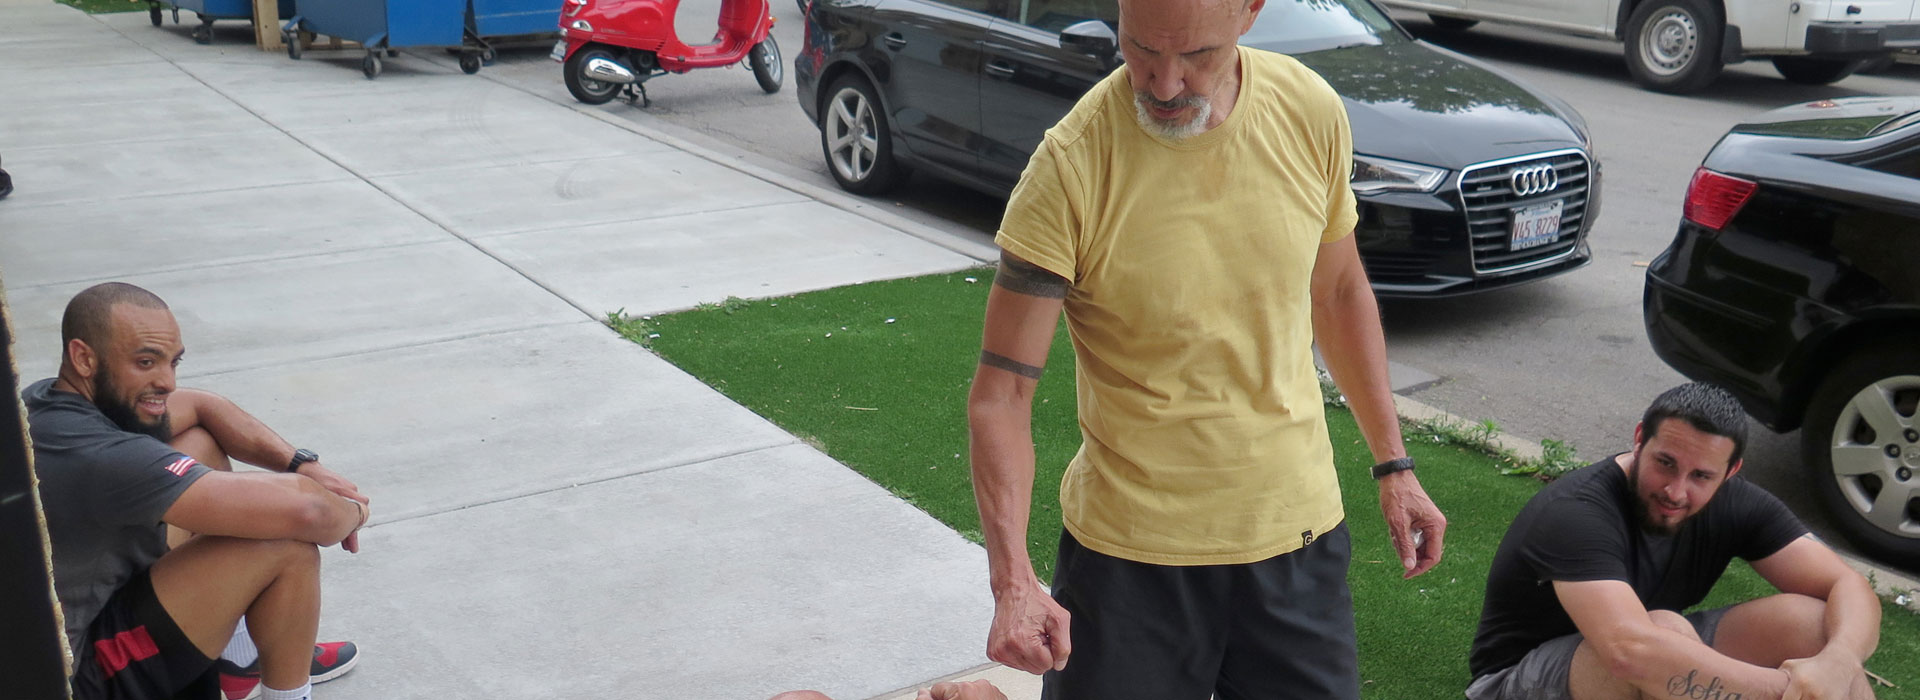 Corporate Fitness Program offered by Bluprint Fitness in West Town Chicago IL, Corporate Fitness Program offered by Bluprint Fitness near Ukrainian Village Chicago IL, Corporate Fitness Program offered by Bluprint Fitness near Wicker Park Chicago IL, Corporate Fitness Program offered by Bluprint Fitness near West Loop Chicago IL, Corporate Fitness Program offered by Bluprint Fitness near Humboldt Park Chicago IL